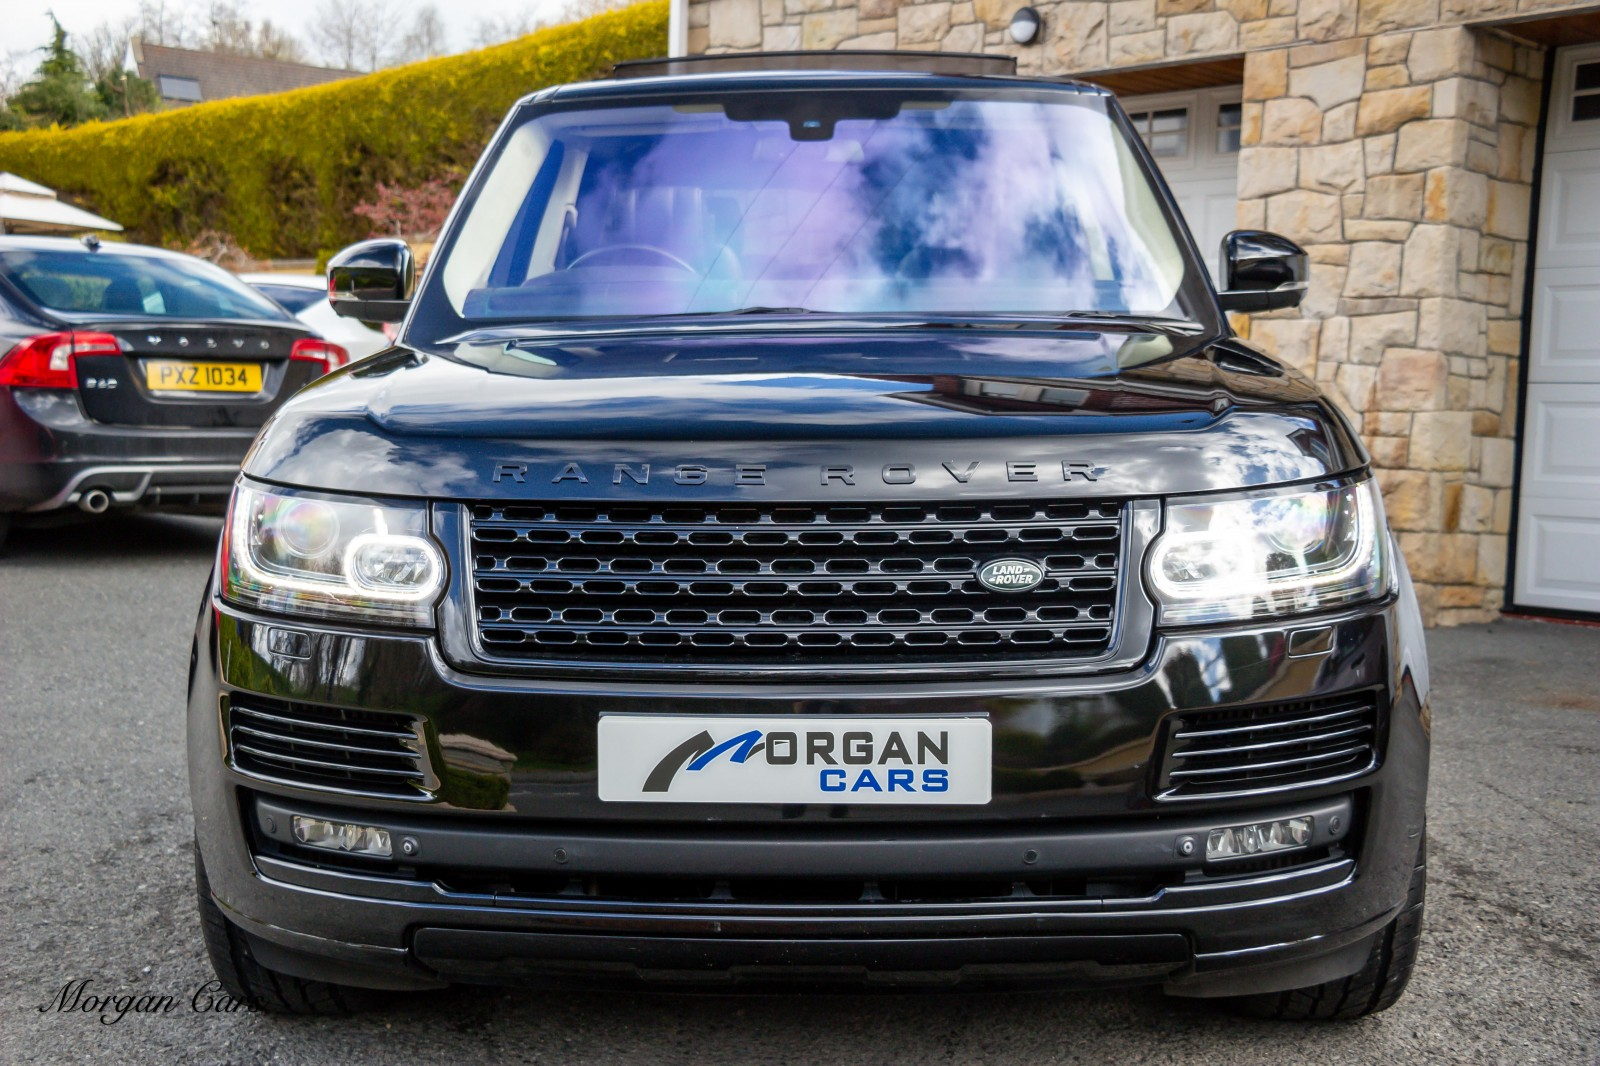 2014 Land Rover Range Rover 4.4 SDV8 AUTOBIOGRAPHY LWB Diesel Automatic – Morgan Cars 9 Mound Road, Warrenpoint, Newry BT34 3LW, UK full